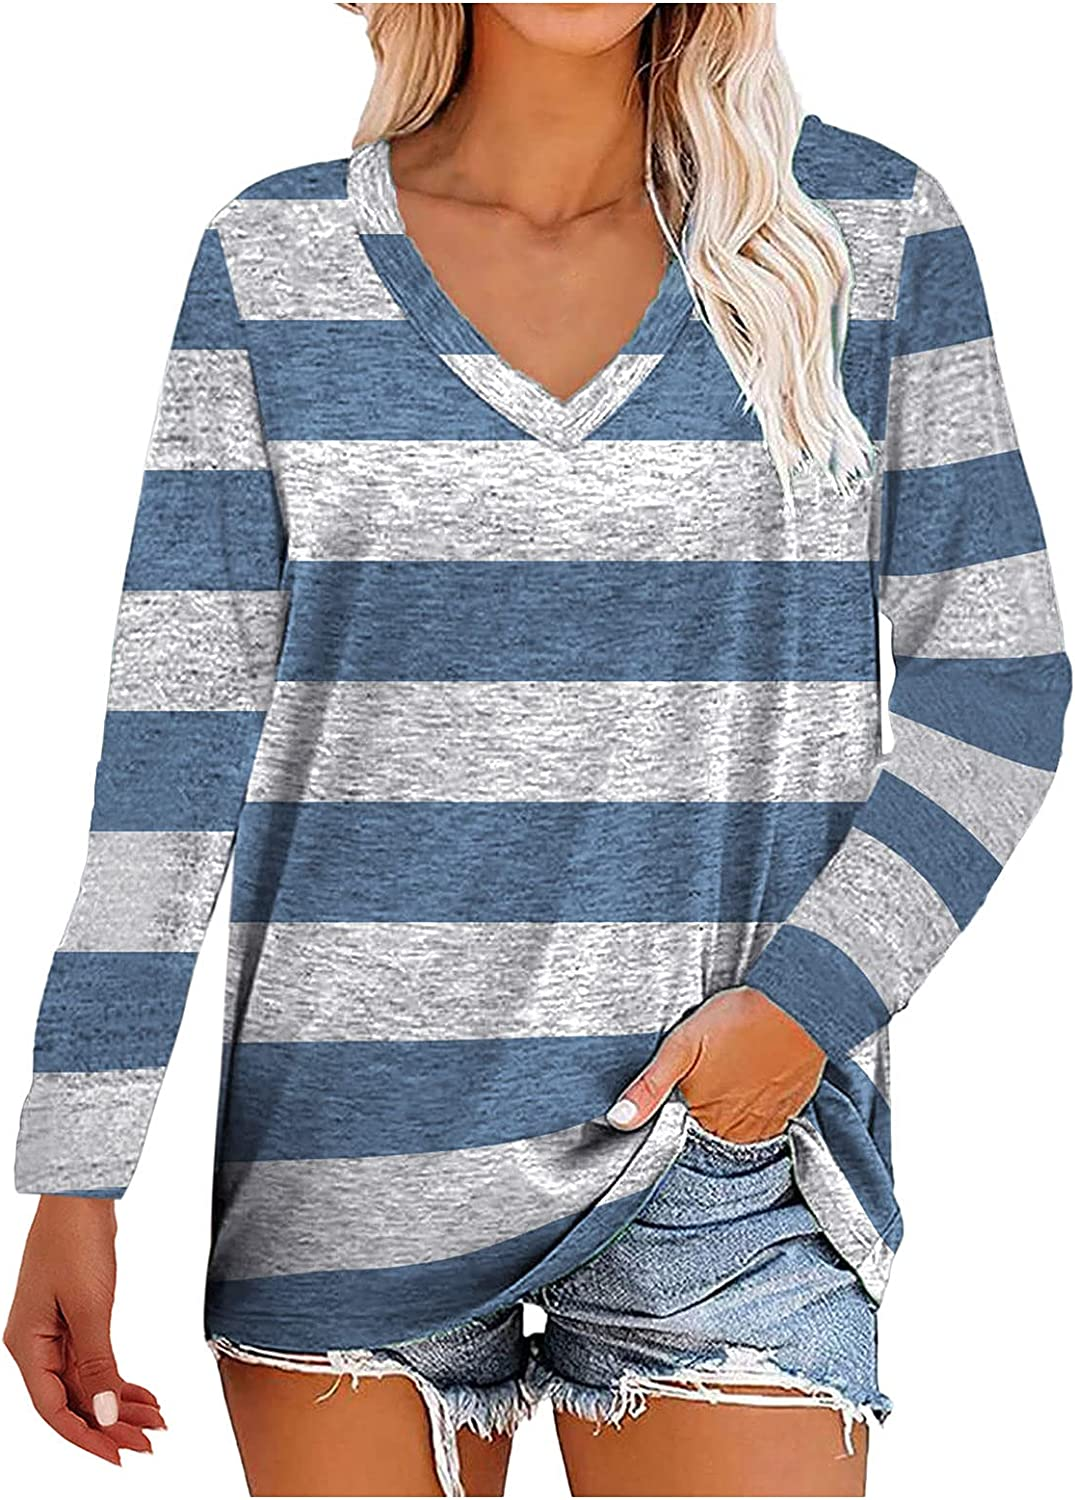 JSPOYOU Womens Long Sleeve V Neck Tunic Tops Basic Stripe Printed Casual Loose Comfy Blouses Tops